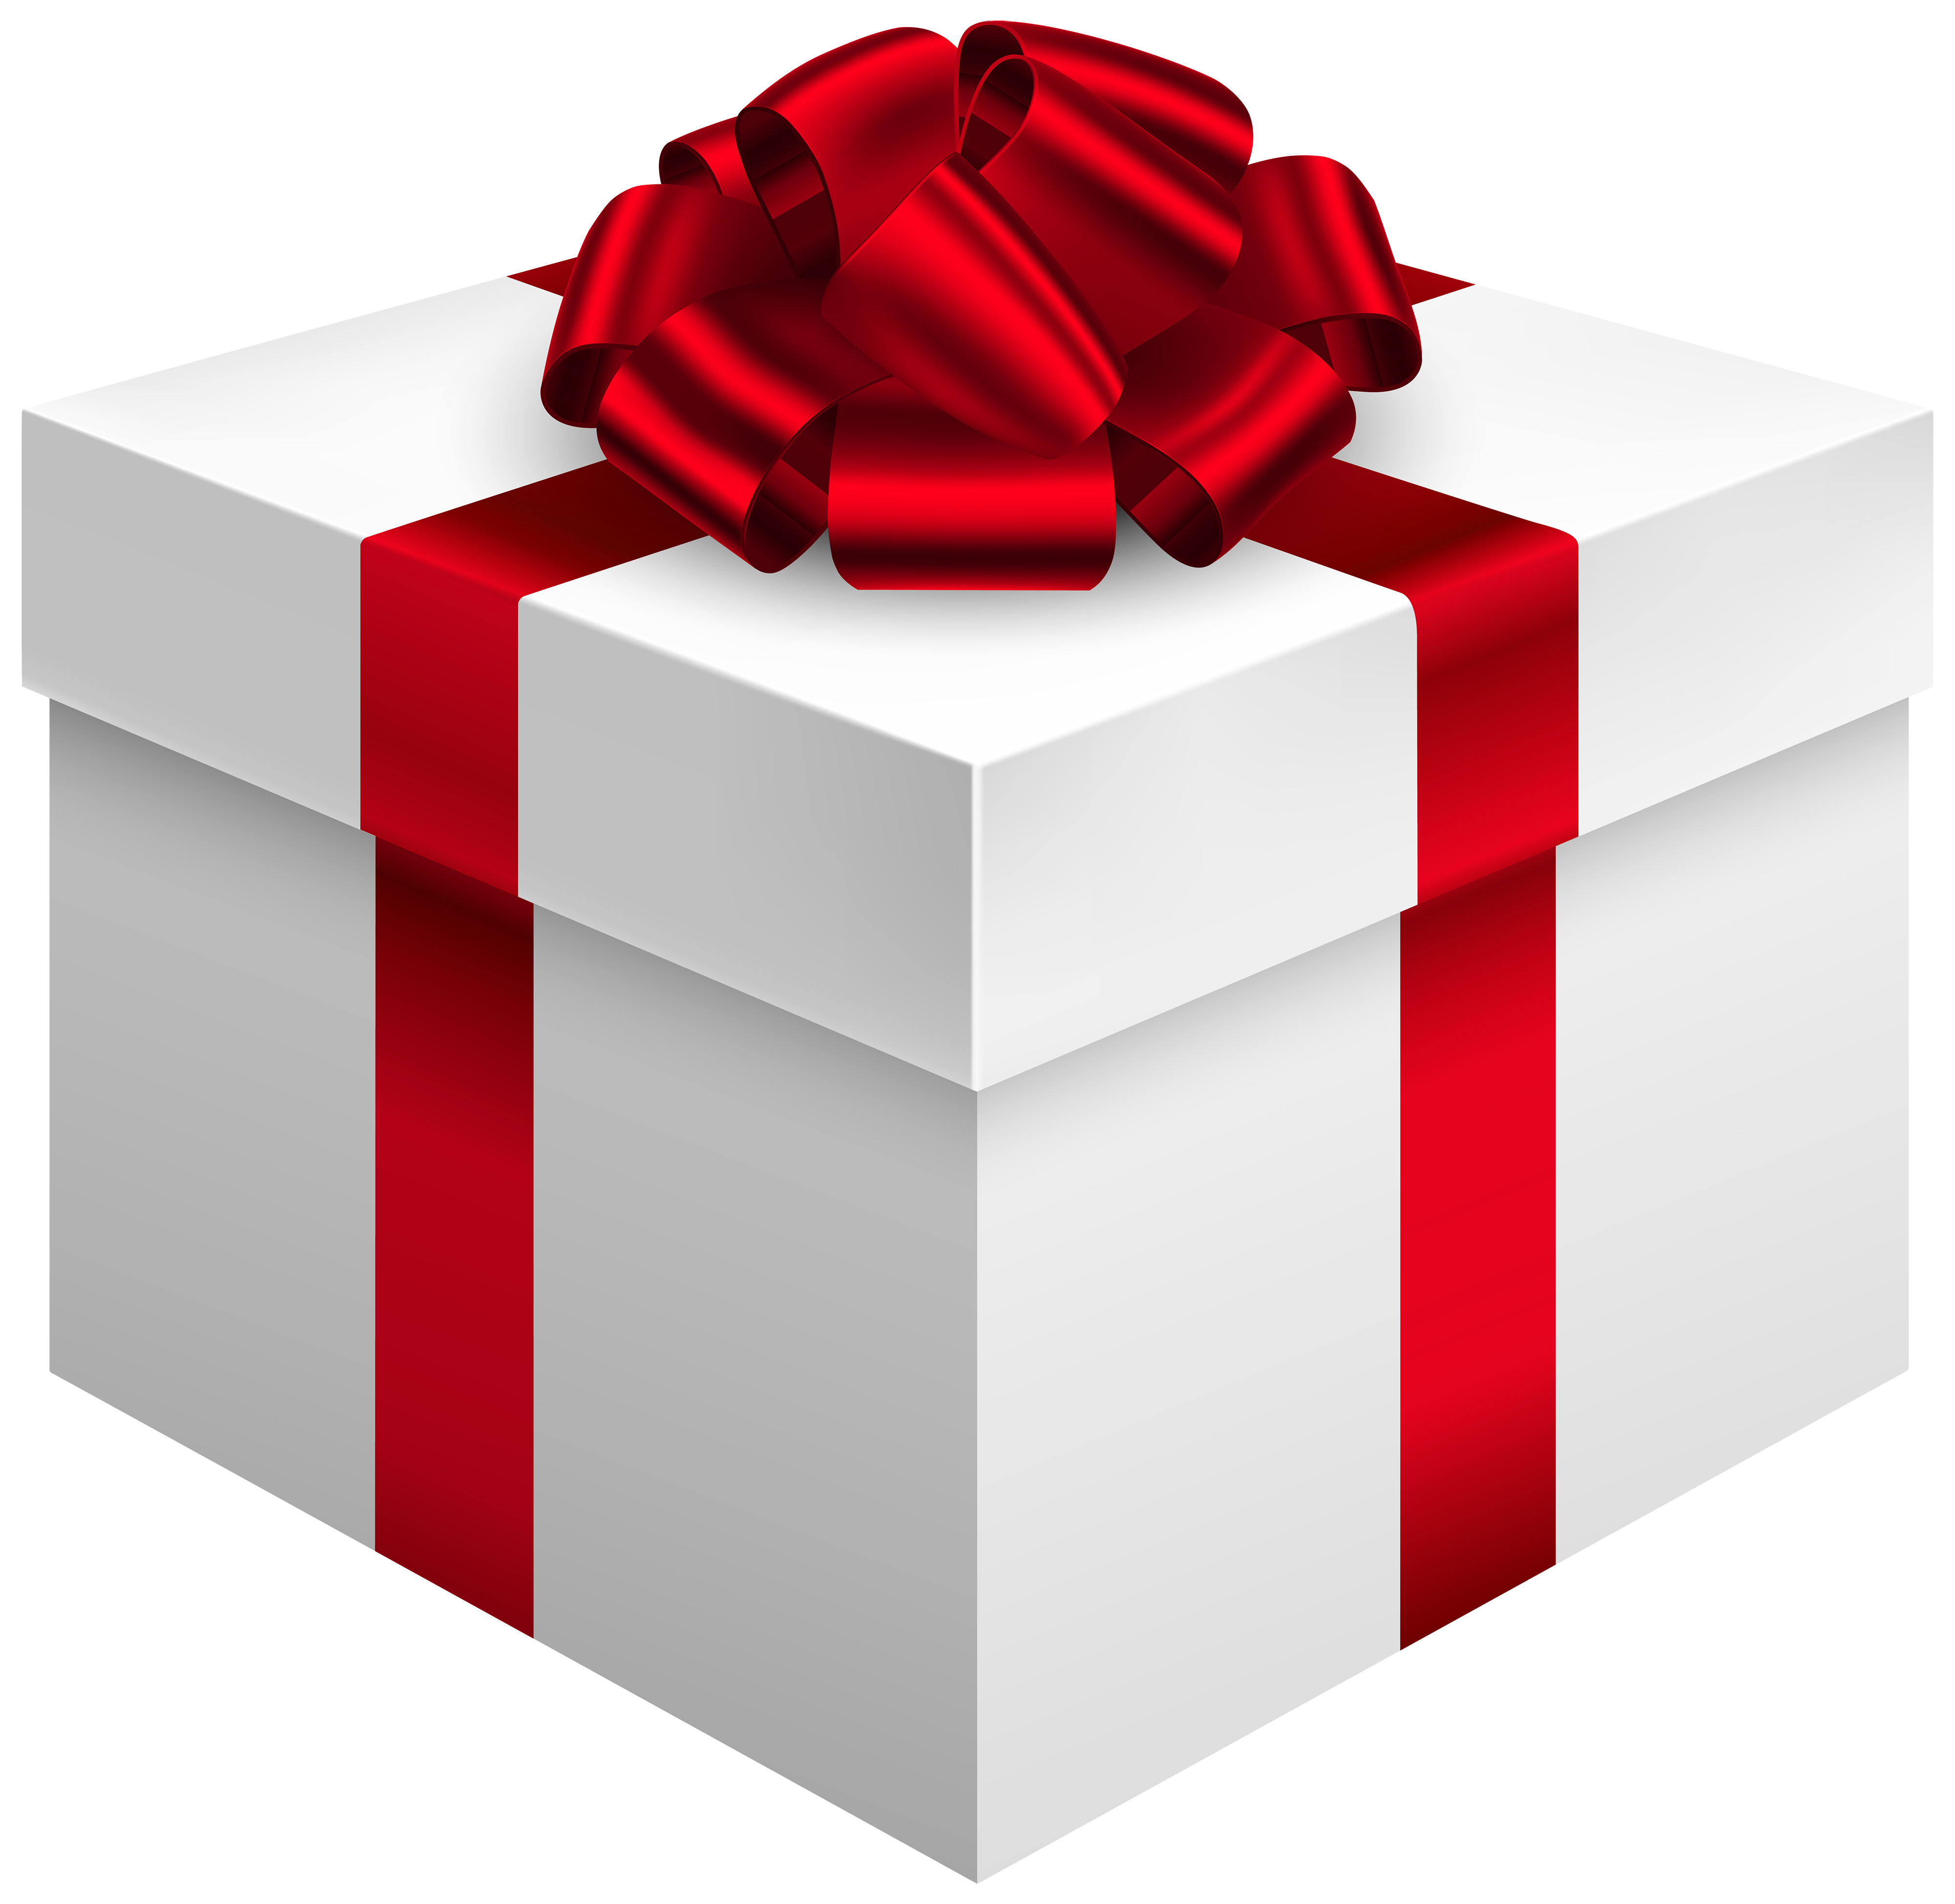 Box clipart quality. White gift with red